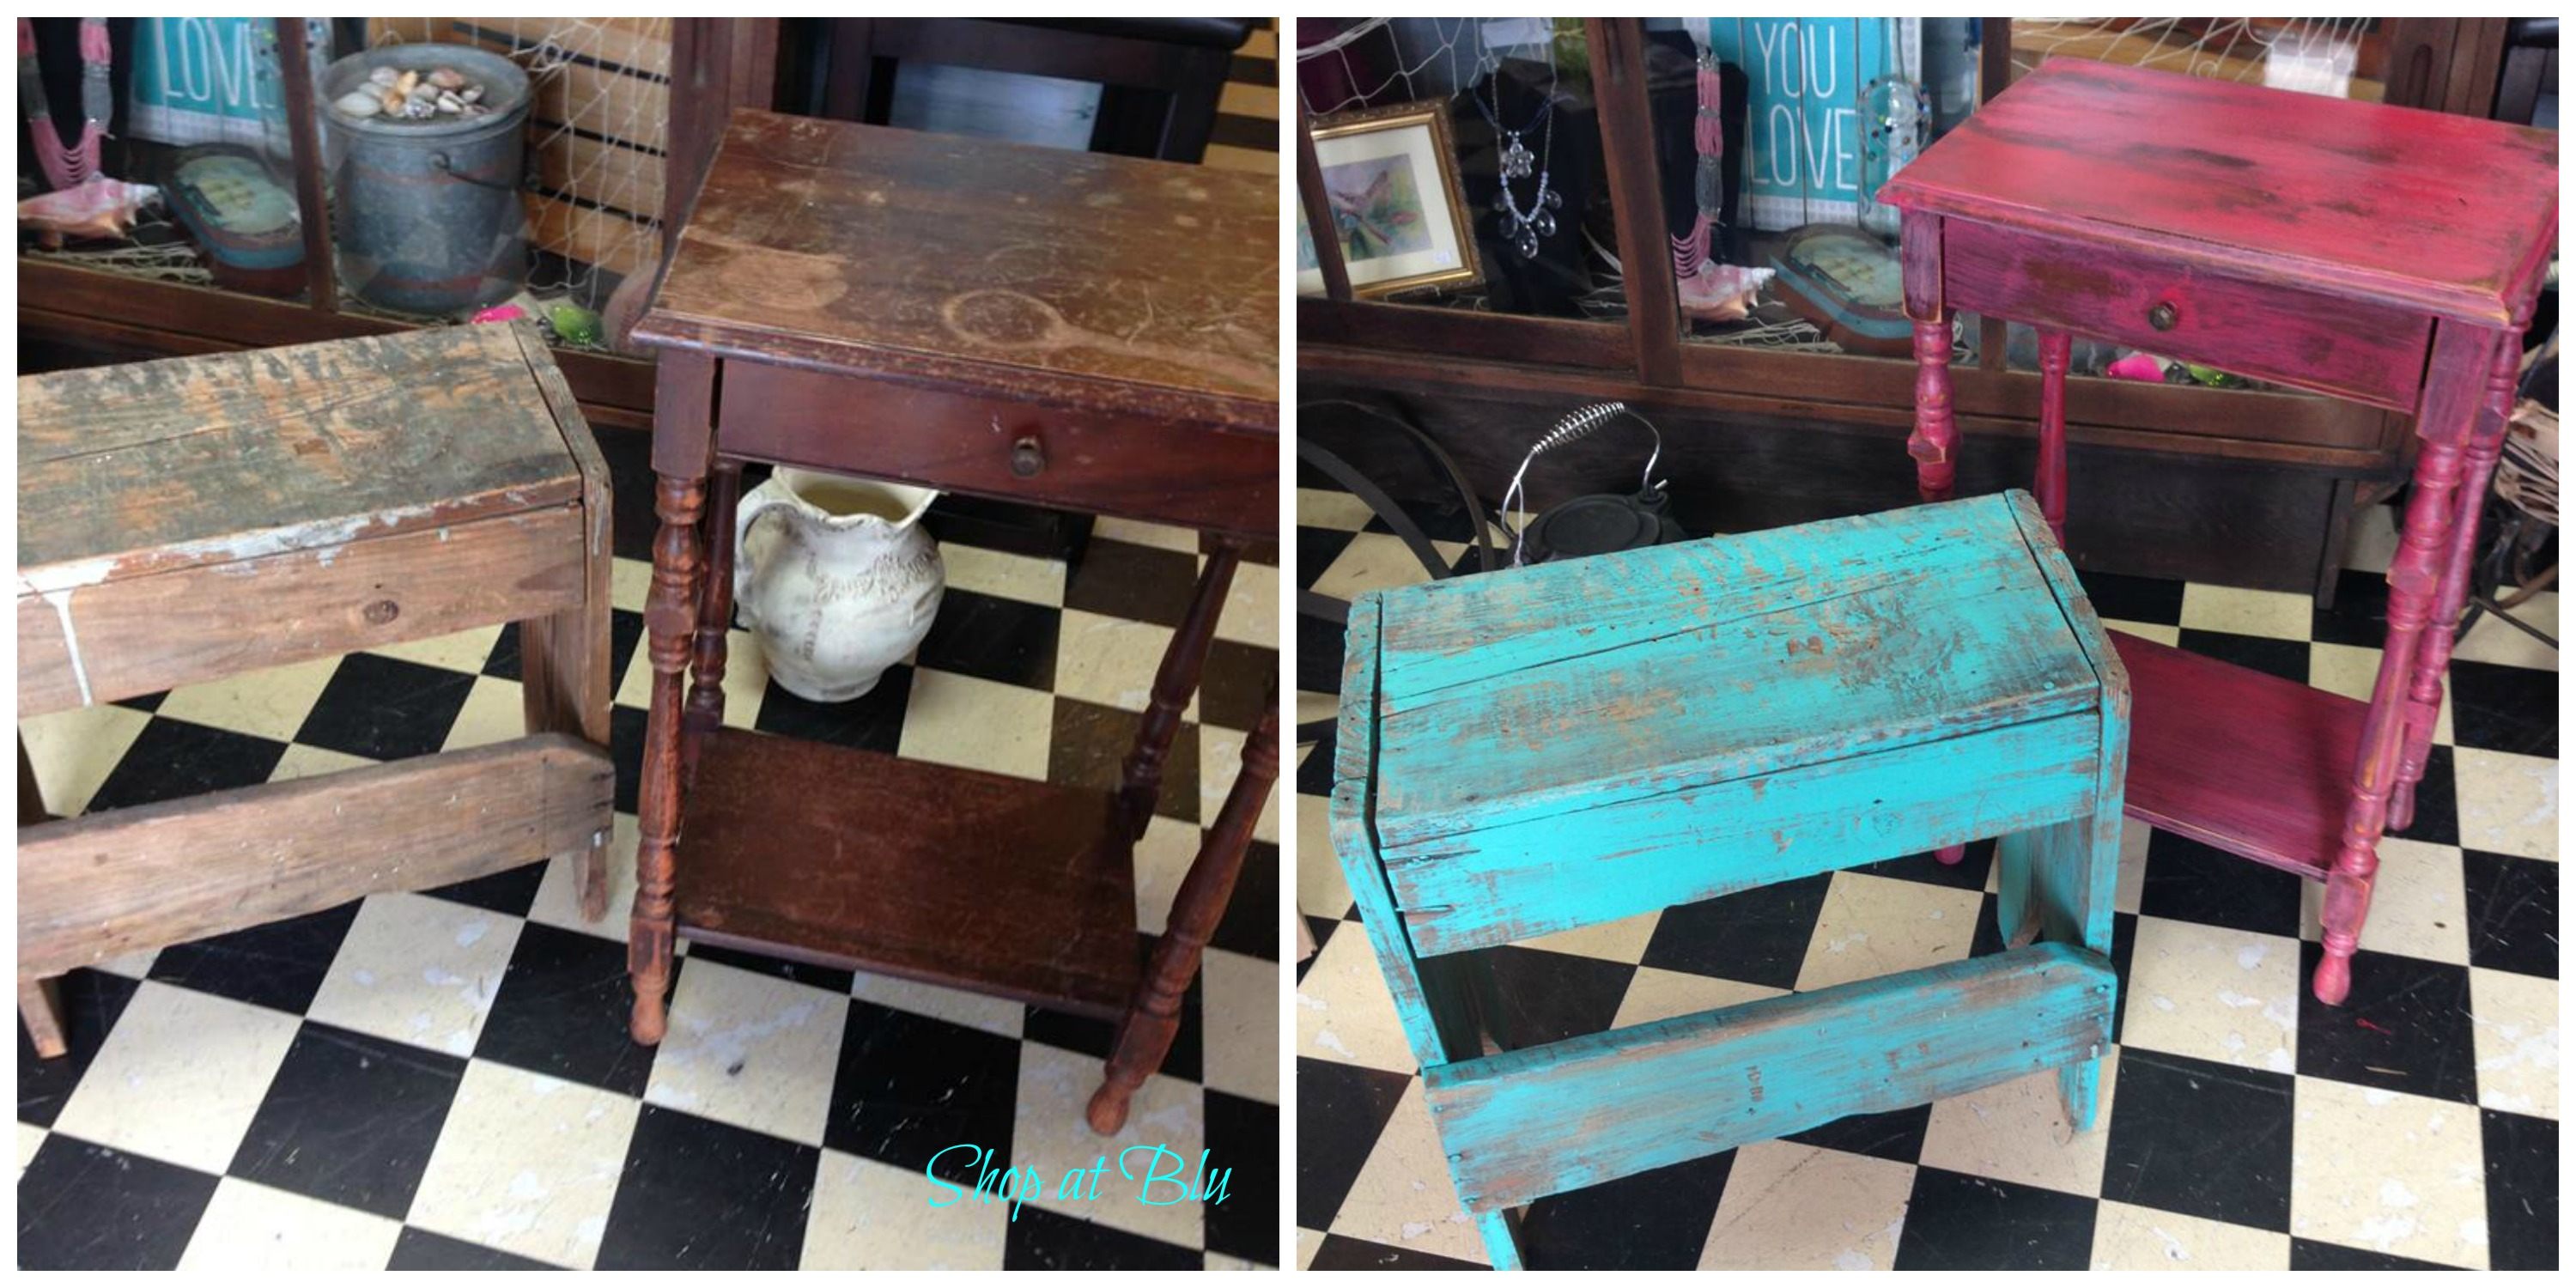 Shop-at-Blu-the-blue-building-table-teal-bench-coral-table-before-and-after